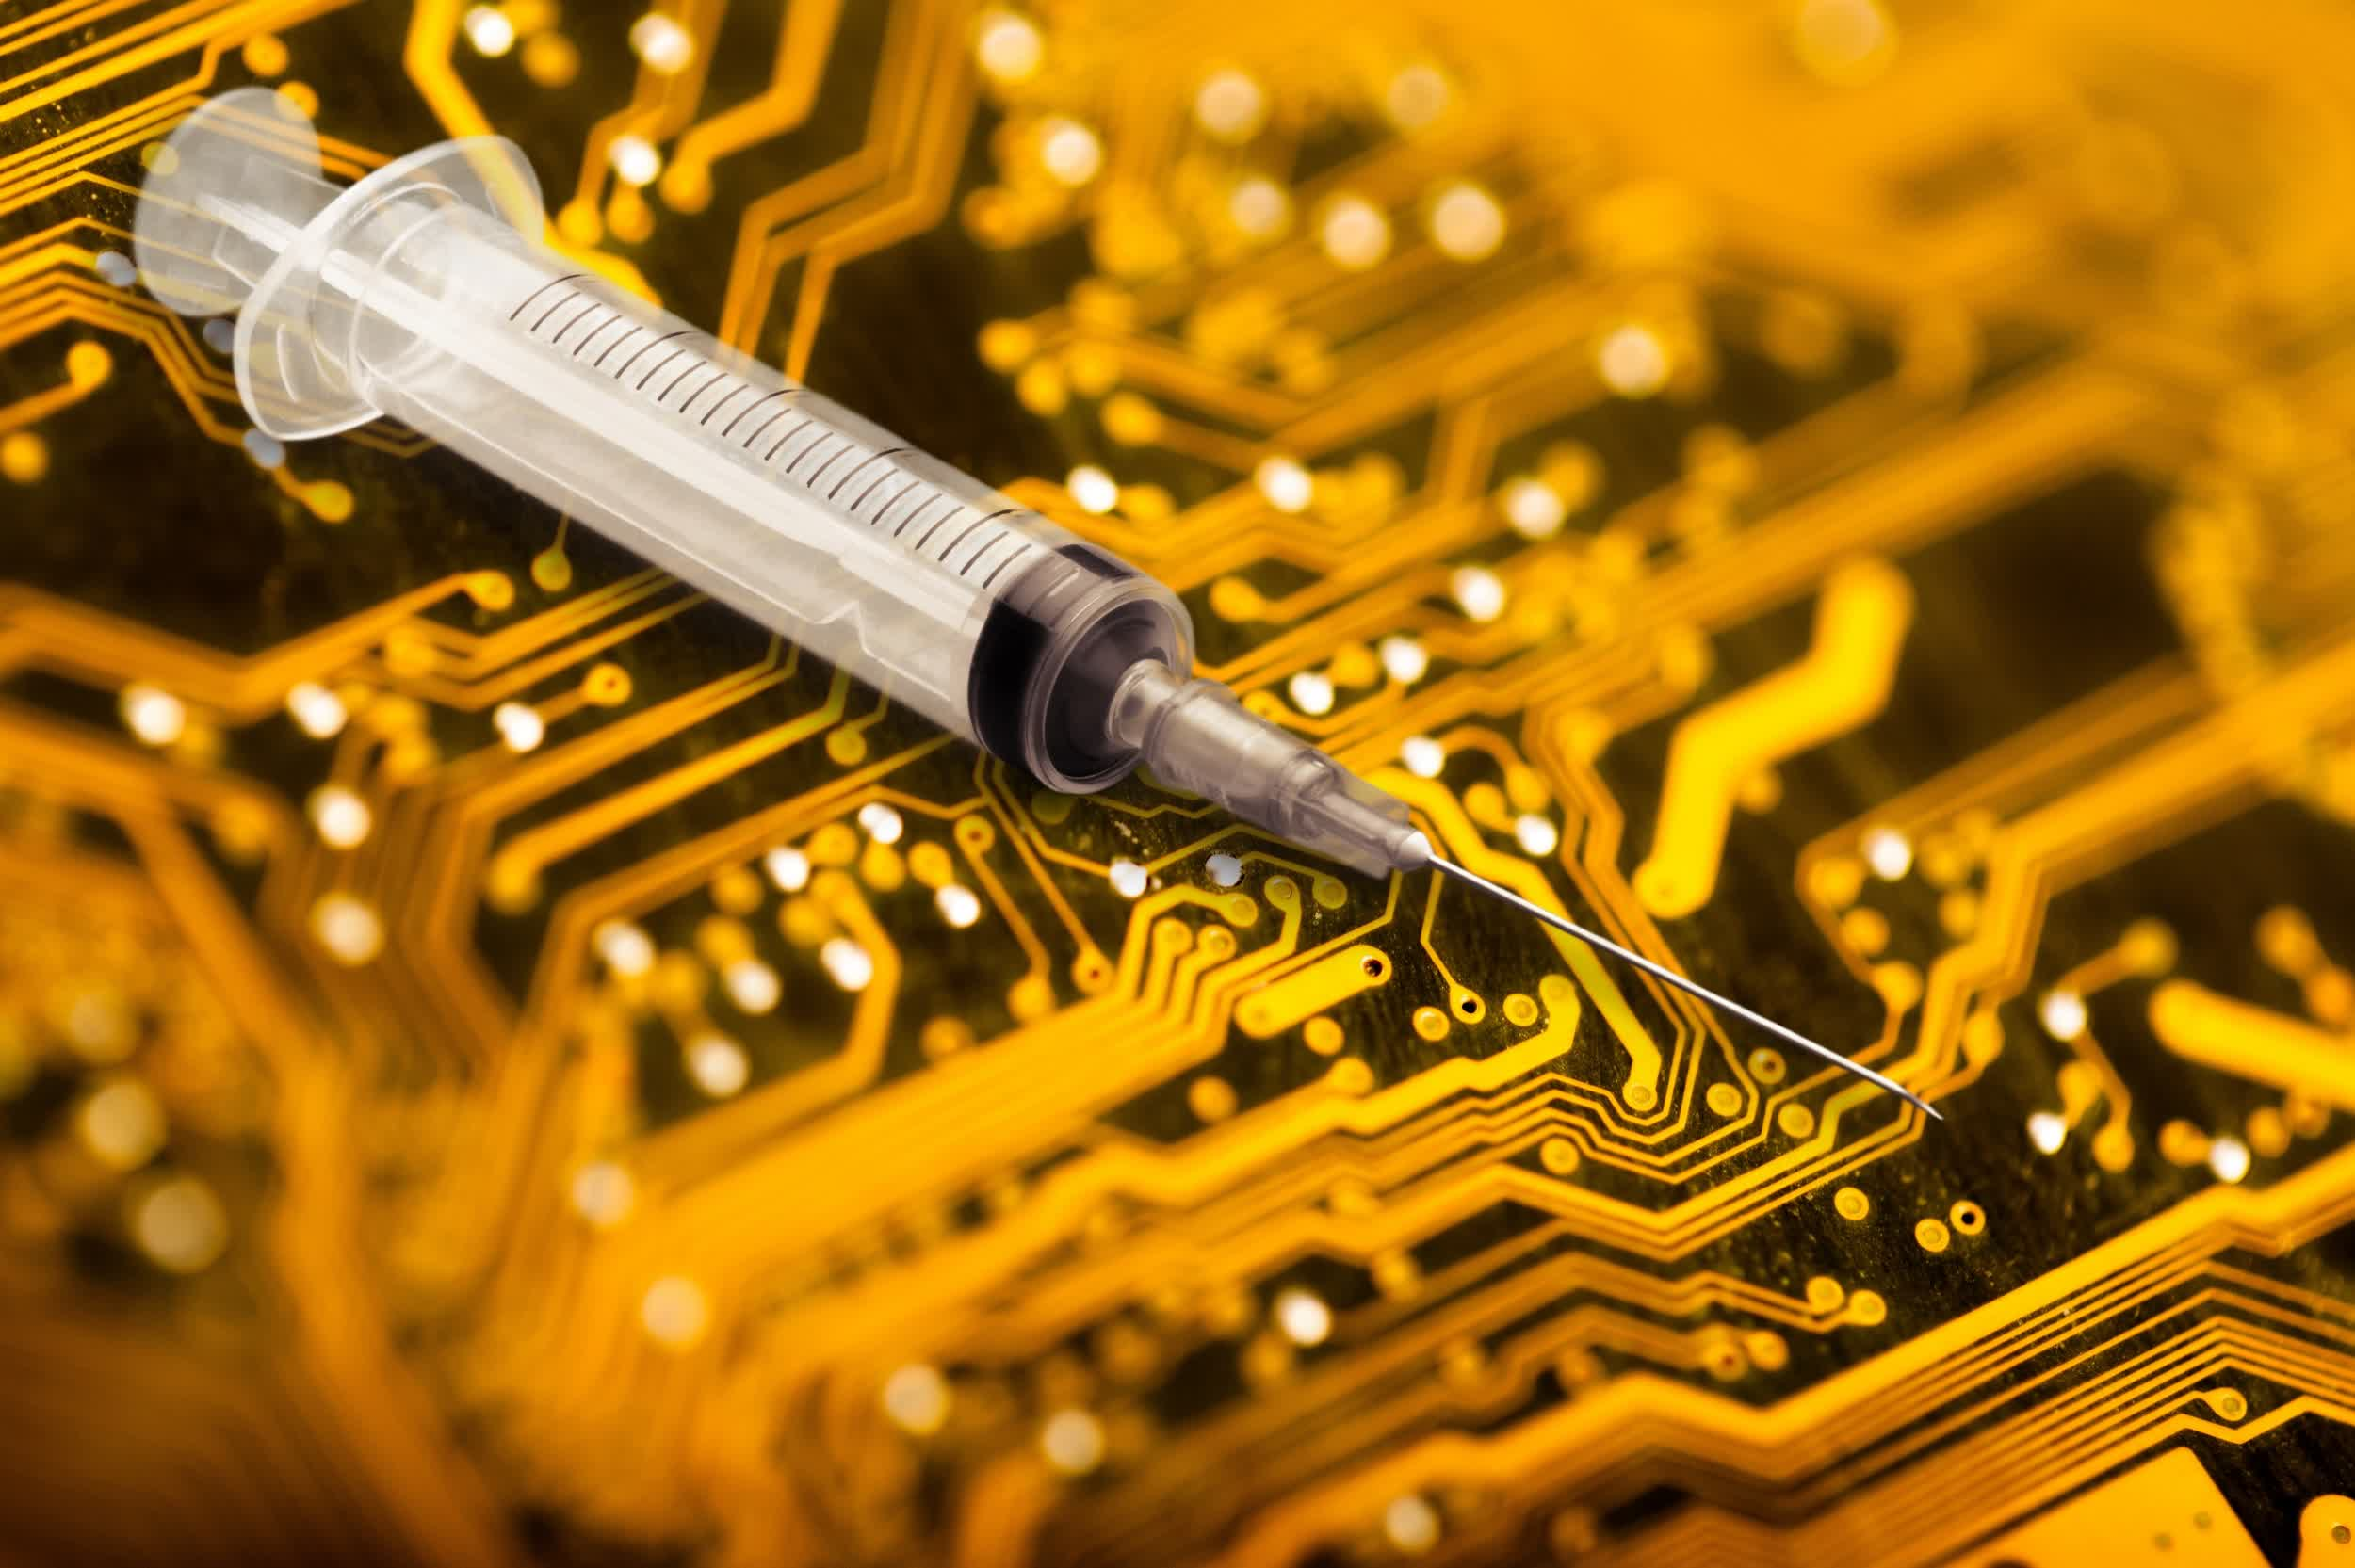 Researchers develop an injectable, microscopic chip to monitor physiological conditions